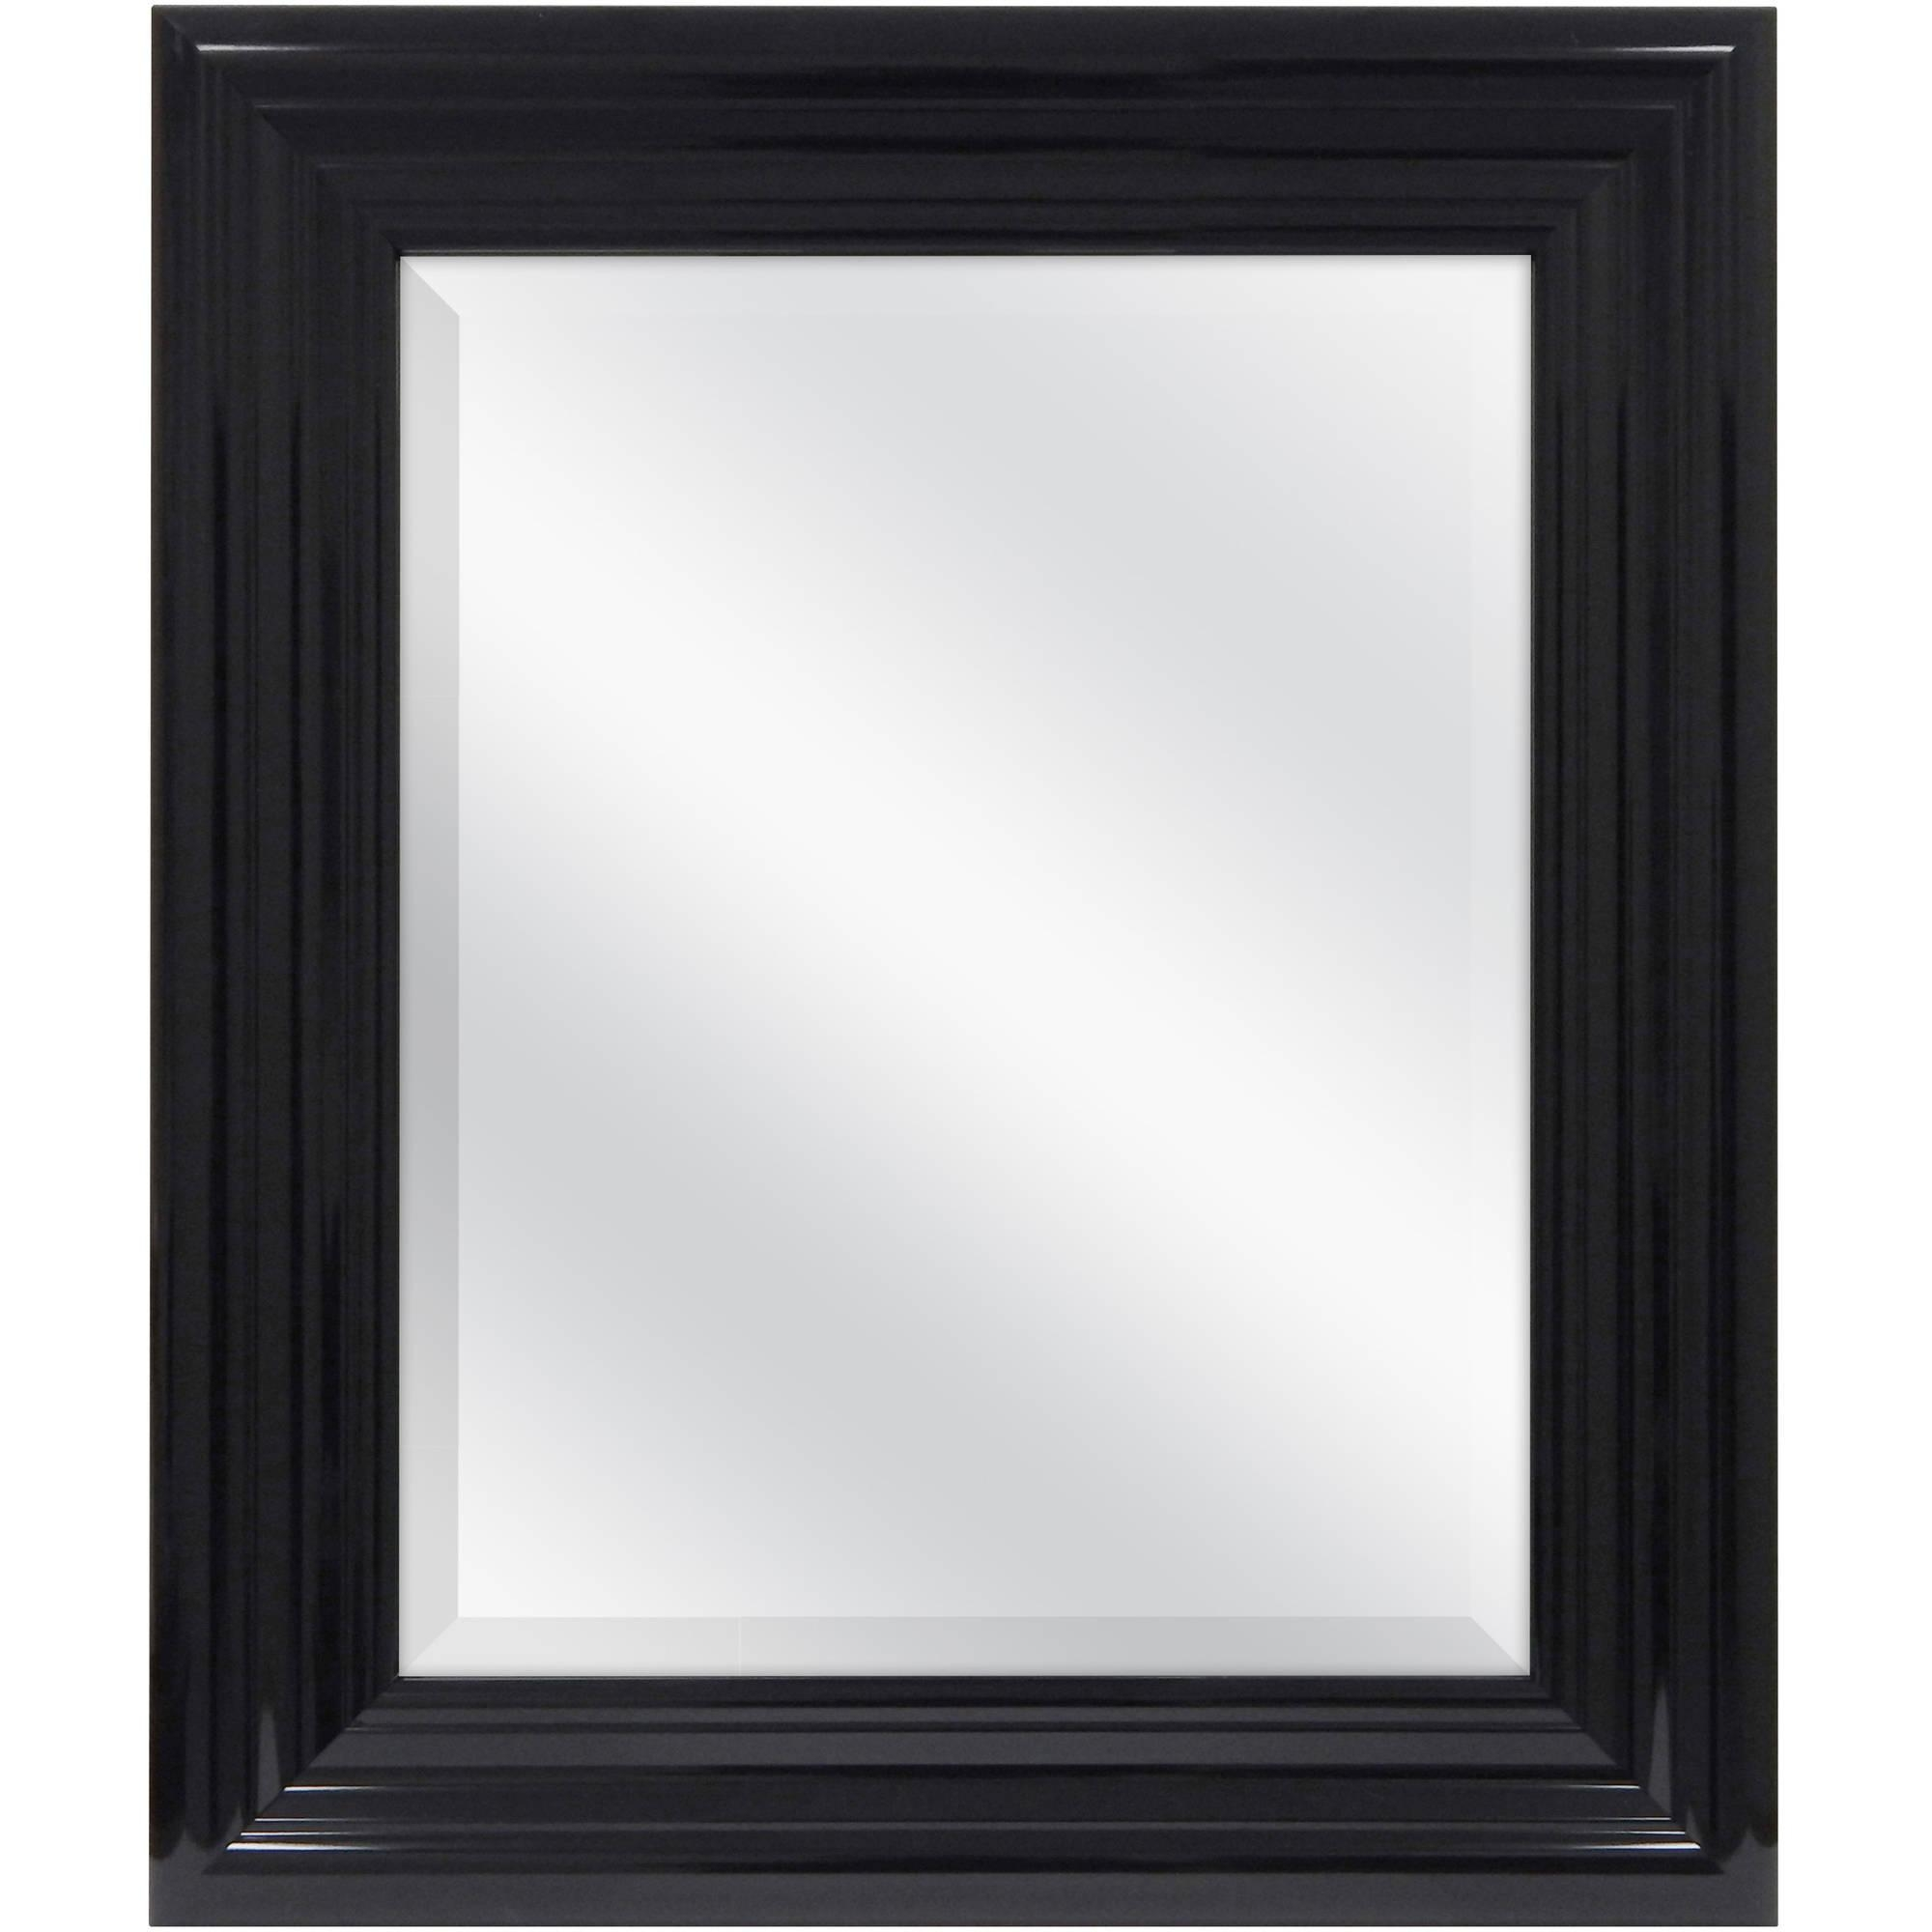 Darice Square Bevel Mirror – Walmart With Regard To Square Bevelled Mirror (Image 5 of 20)